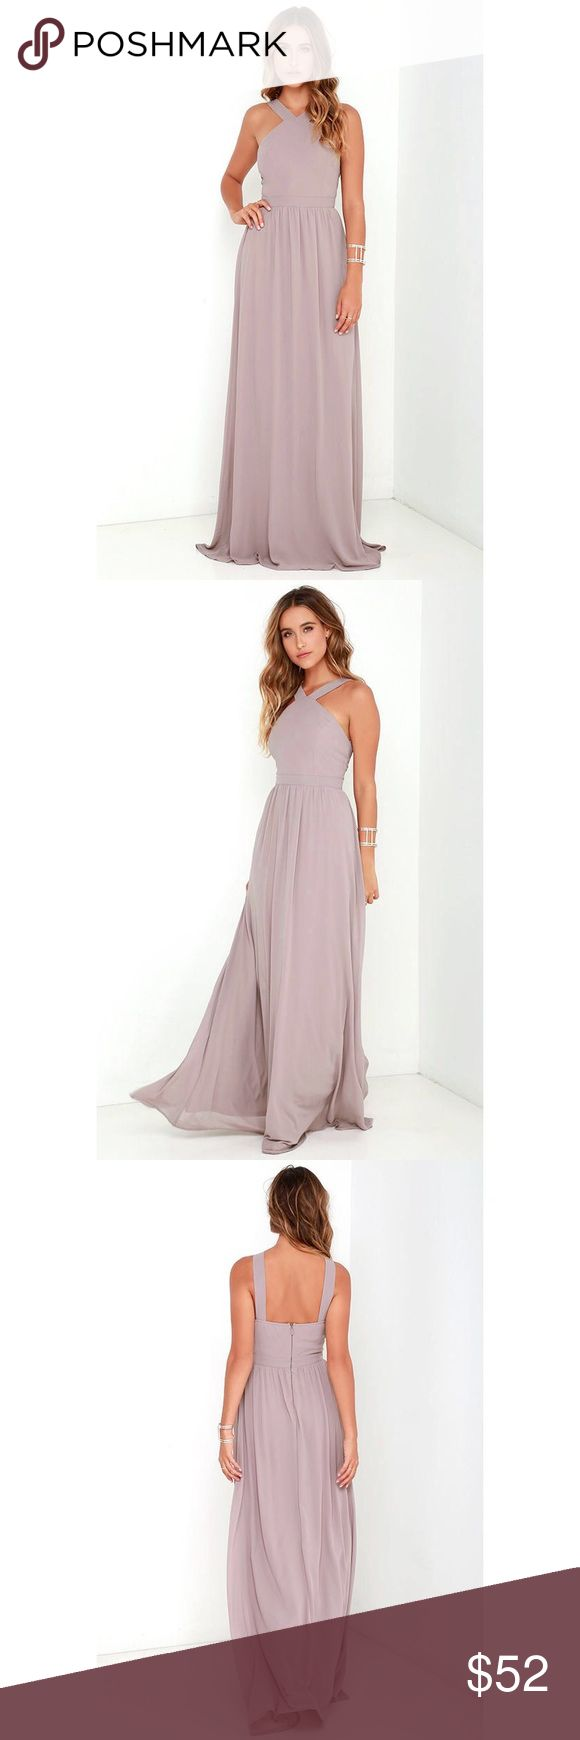 Lulu's Air of Romance / / Taupe Maxi Dress Never worn. New with tags / / More romantic than a candlelit dinner or a trip to the Eiffel Tower, the Air of Romance Taupe Maxi Dress will have you feeling the love! Lightweight Georgette falls from a modified halter neckline, into a seamed bodice supported by semi-sheer shoulder straps. A sweeping skirt cascades from a banded waist completing this elegant maxi dress. Hidden zipper with clasp. Fully lined. 100% polyester. Dry Clean only. Lulu's…